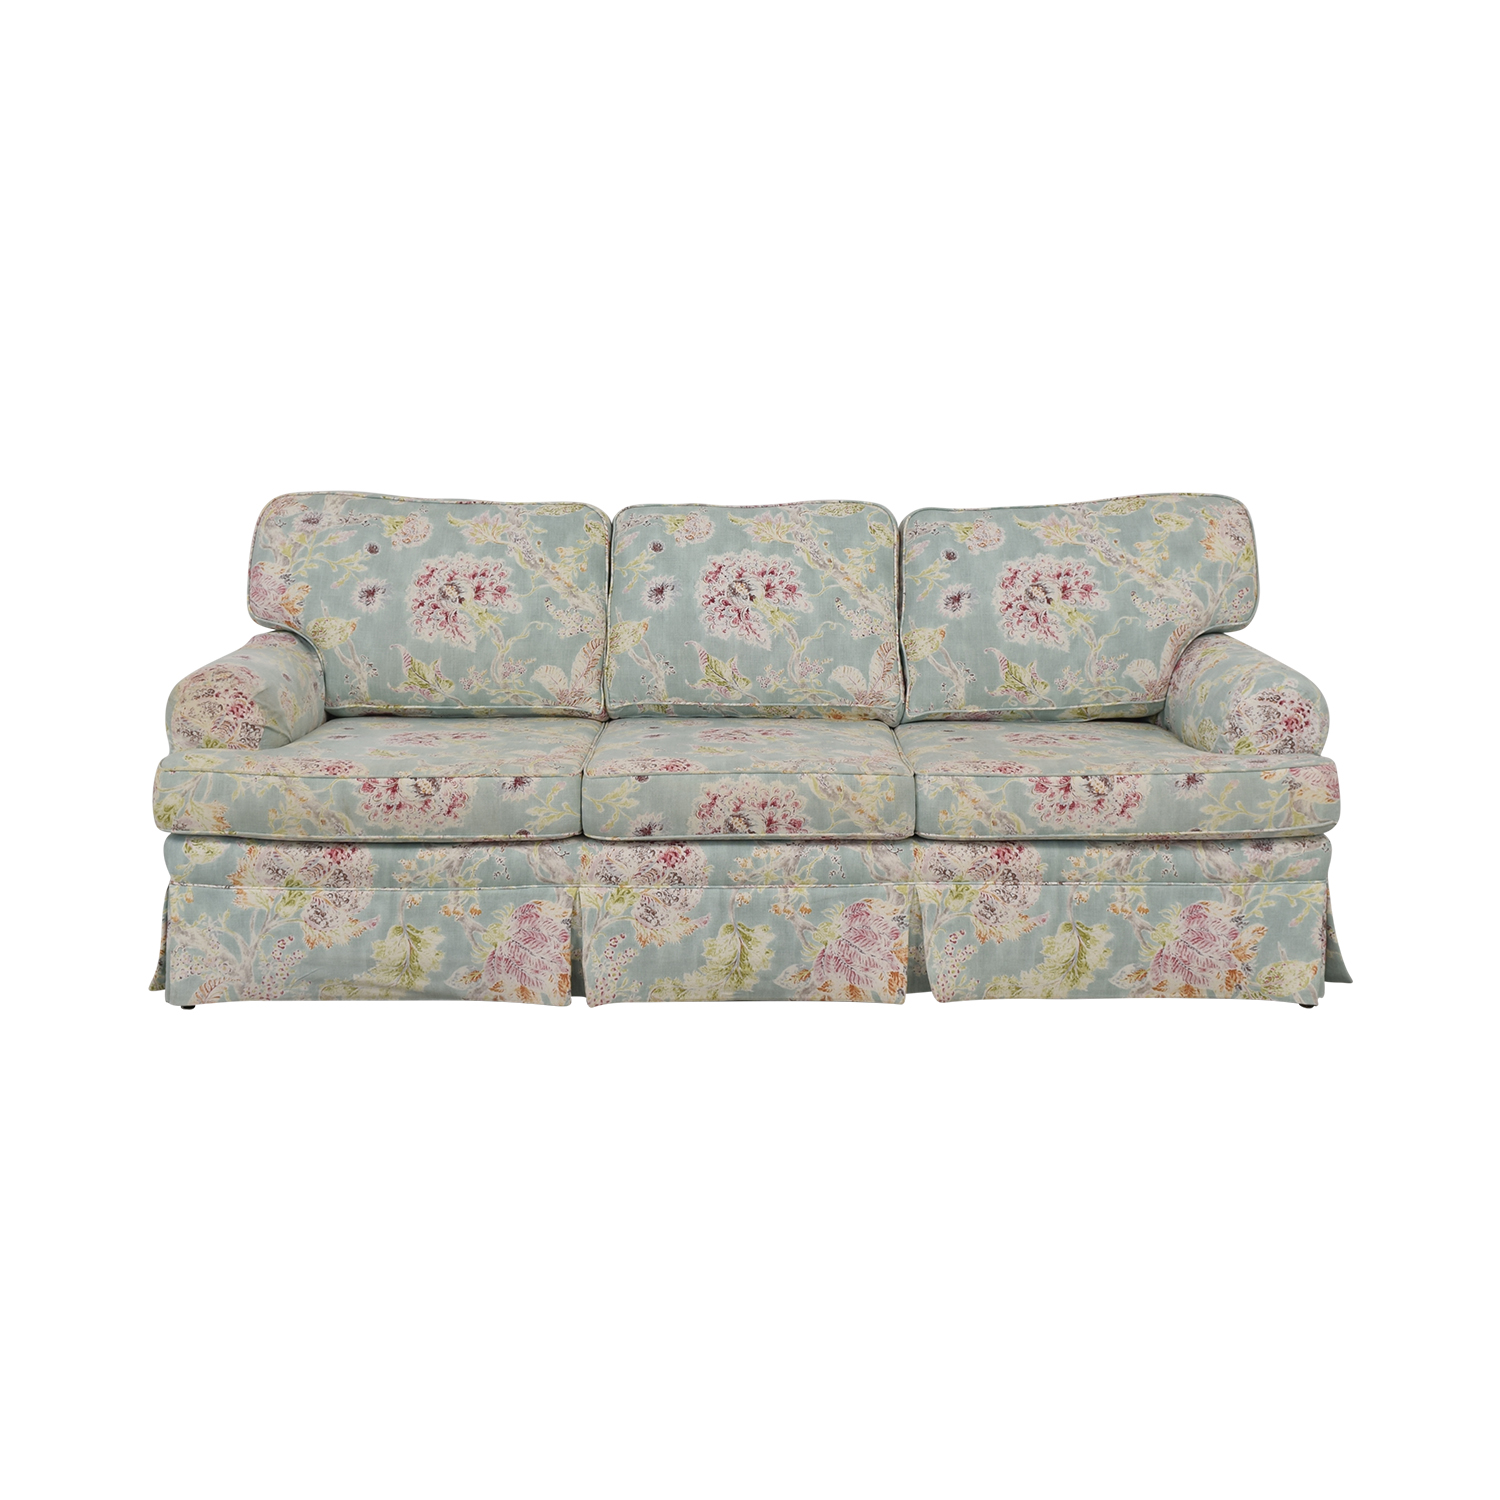 Ethan Allen Three Cushion Sofa sale